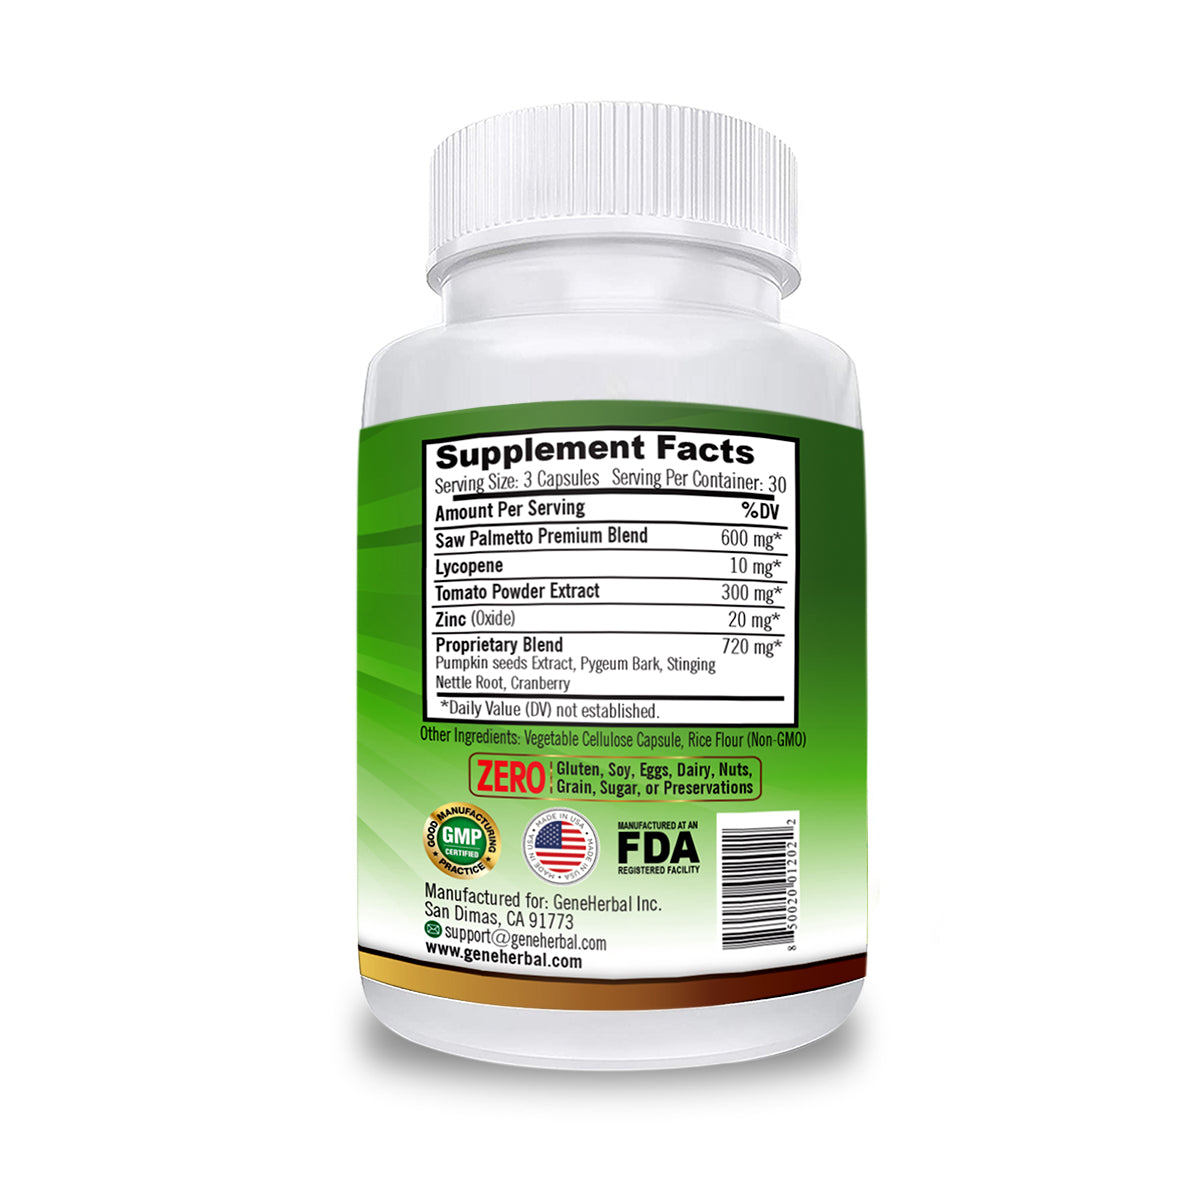 Hair loss root palmetto nettle pygeum saw Pygeum for